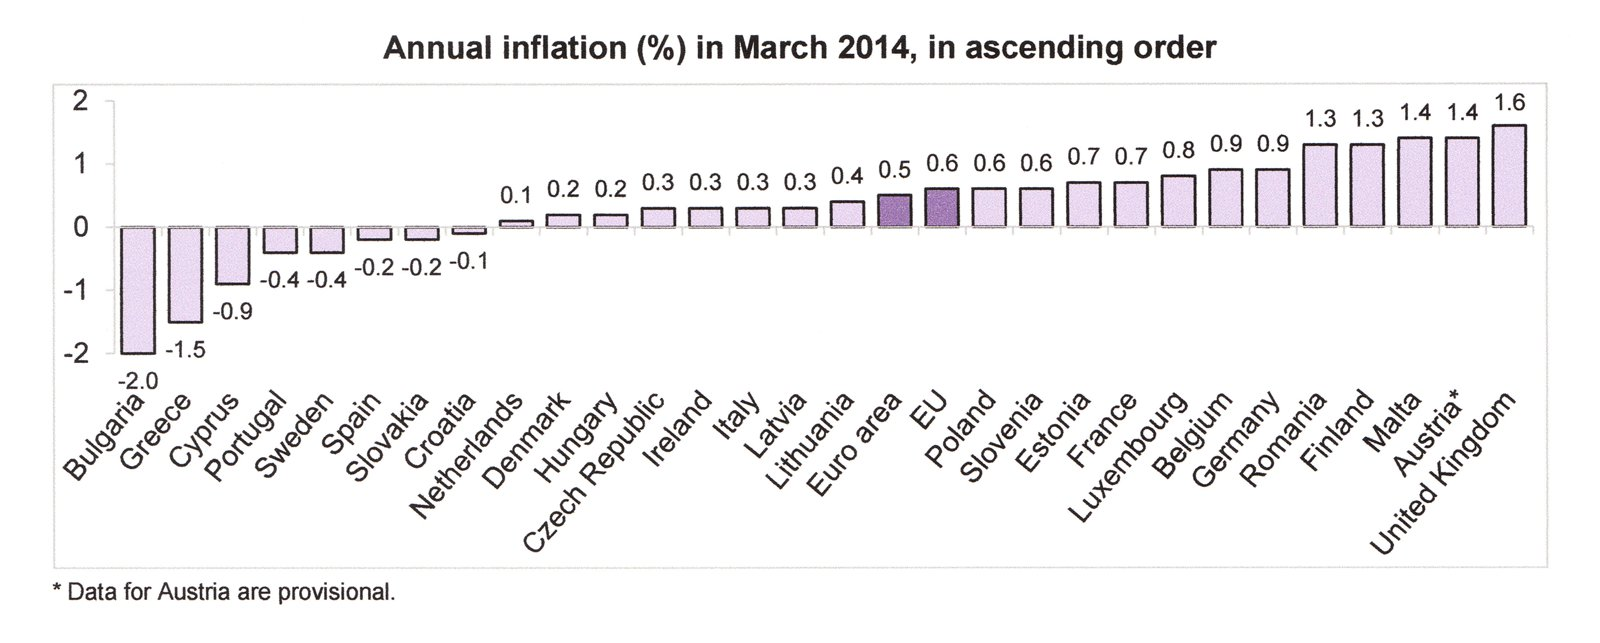 http://einarbb.blog.is/users/72/einarbb/img/inflation_march.jpg